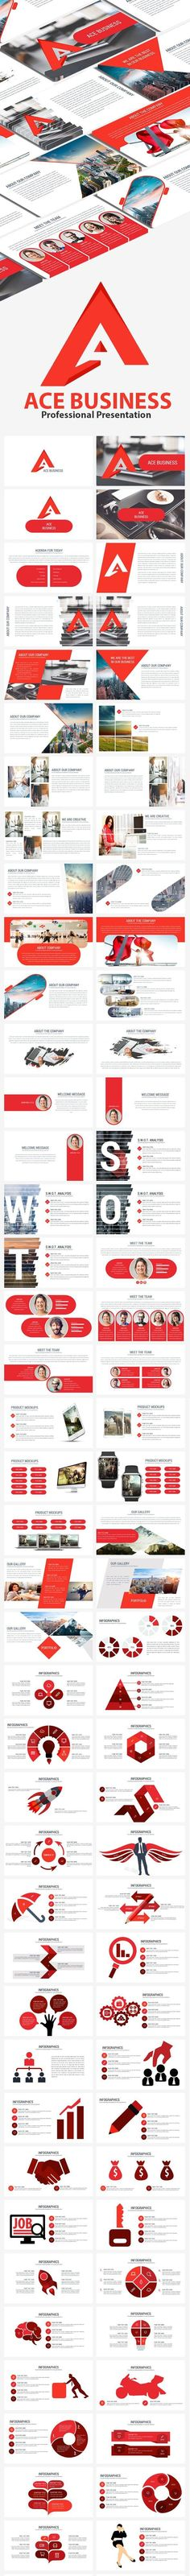 Buy Ace Business Keynote Presentation Template by loveishkalsi on GraphicRiver. Our Top Rated Keynote Templates Ace Business is a Keynote Template that is suitable for all kind of presentations. Business Presentation Templates, Presentation Design Template, Business Powerpoint Templates, Keynote Template, Professional Presentation, Business Fashion, Branding Design, Photoshop, Graphic Design